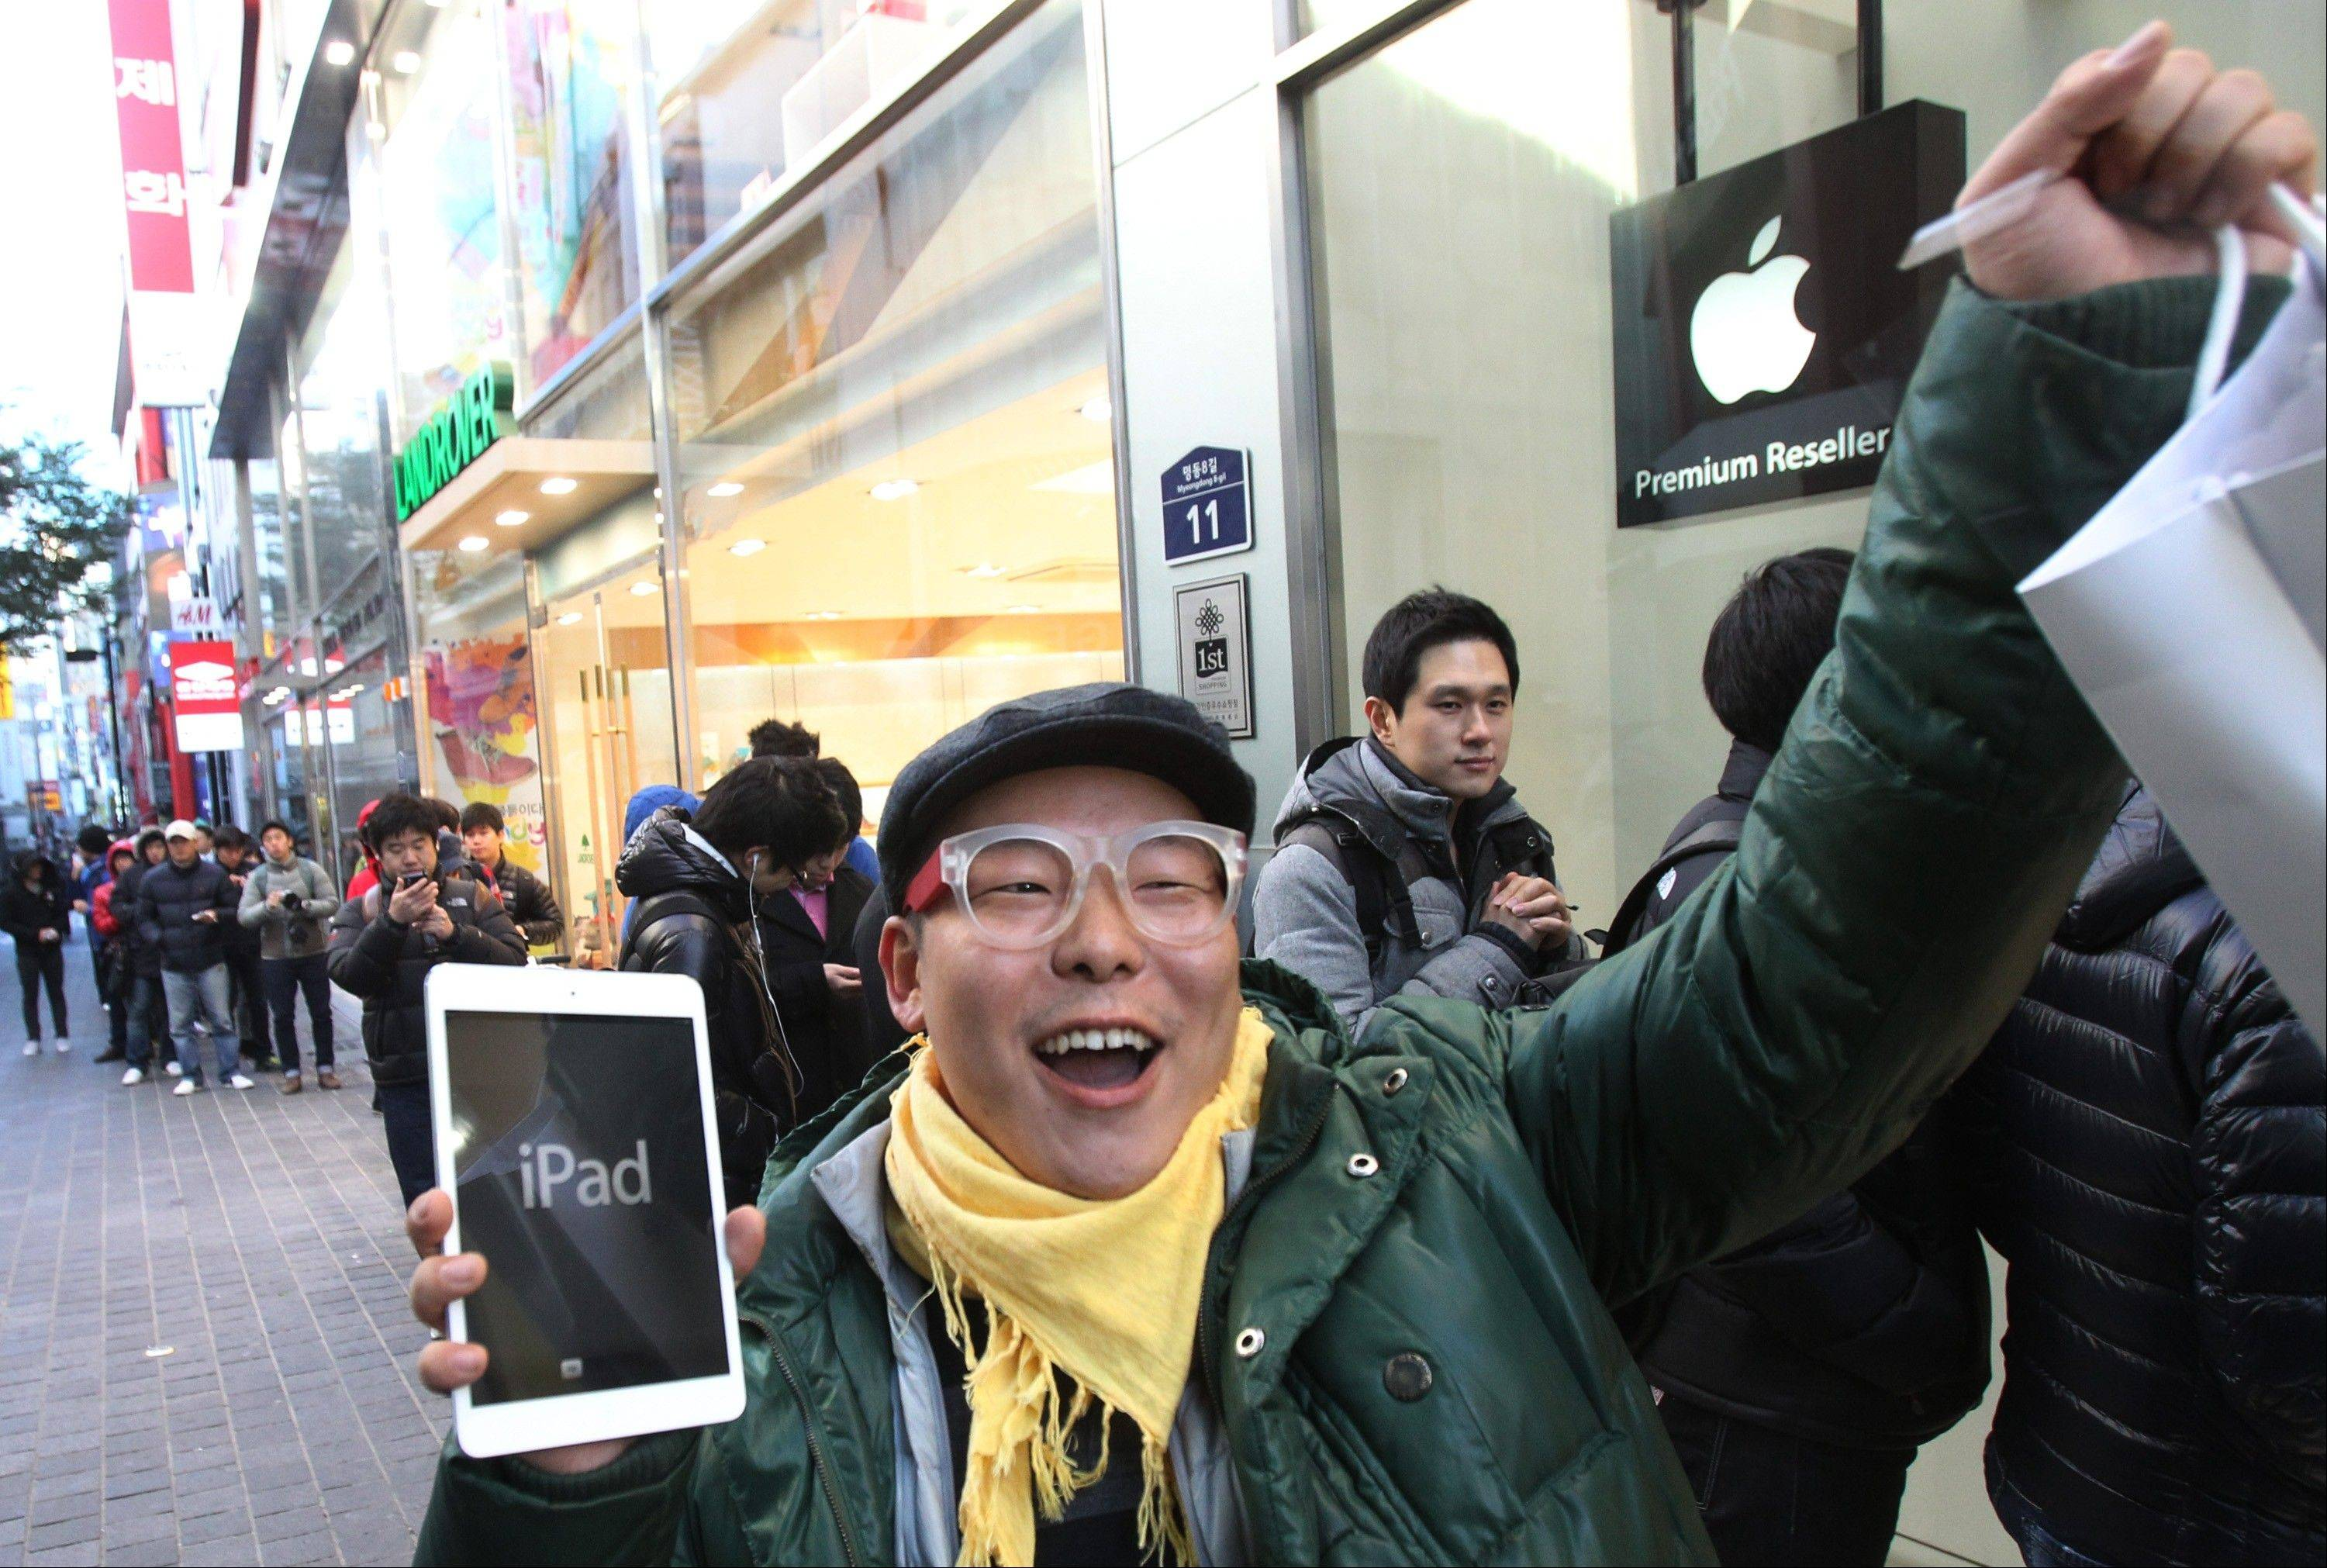 Song Tae-min reacts after buying a new iPad Mini in Seoul, South Korea. The tablet computer is without a doubt the gift of the year, just like it was last year. But if you resisted the urge in 2011, now is the time to give in. This season's tablets are better all around. Intense competition has kept prices very low, making tablets incredible values compared to smartphones and PCs.